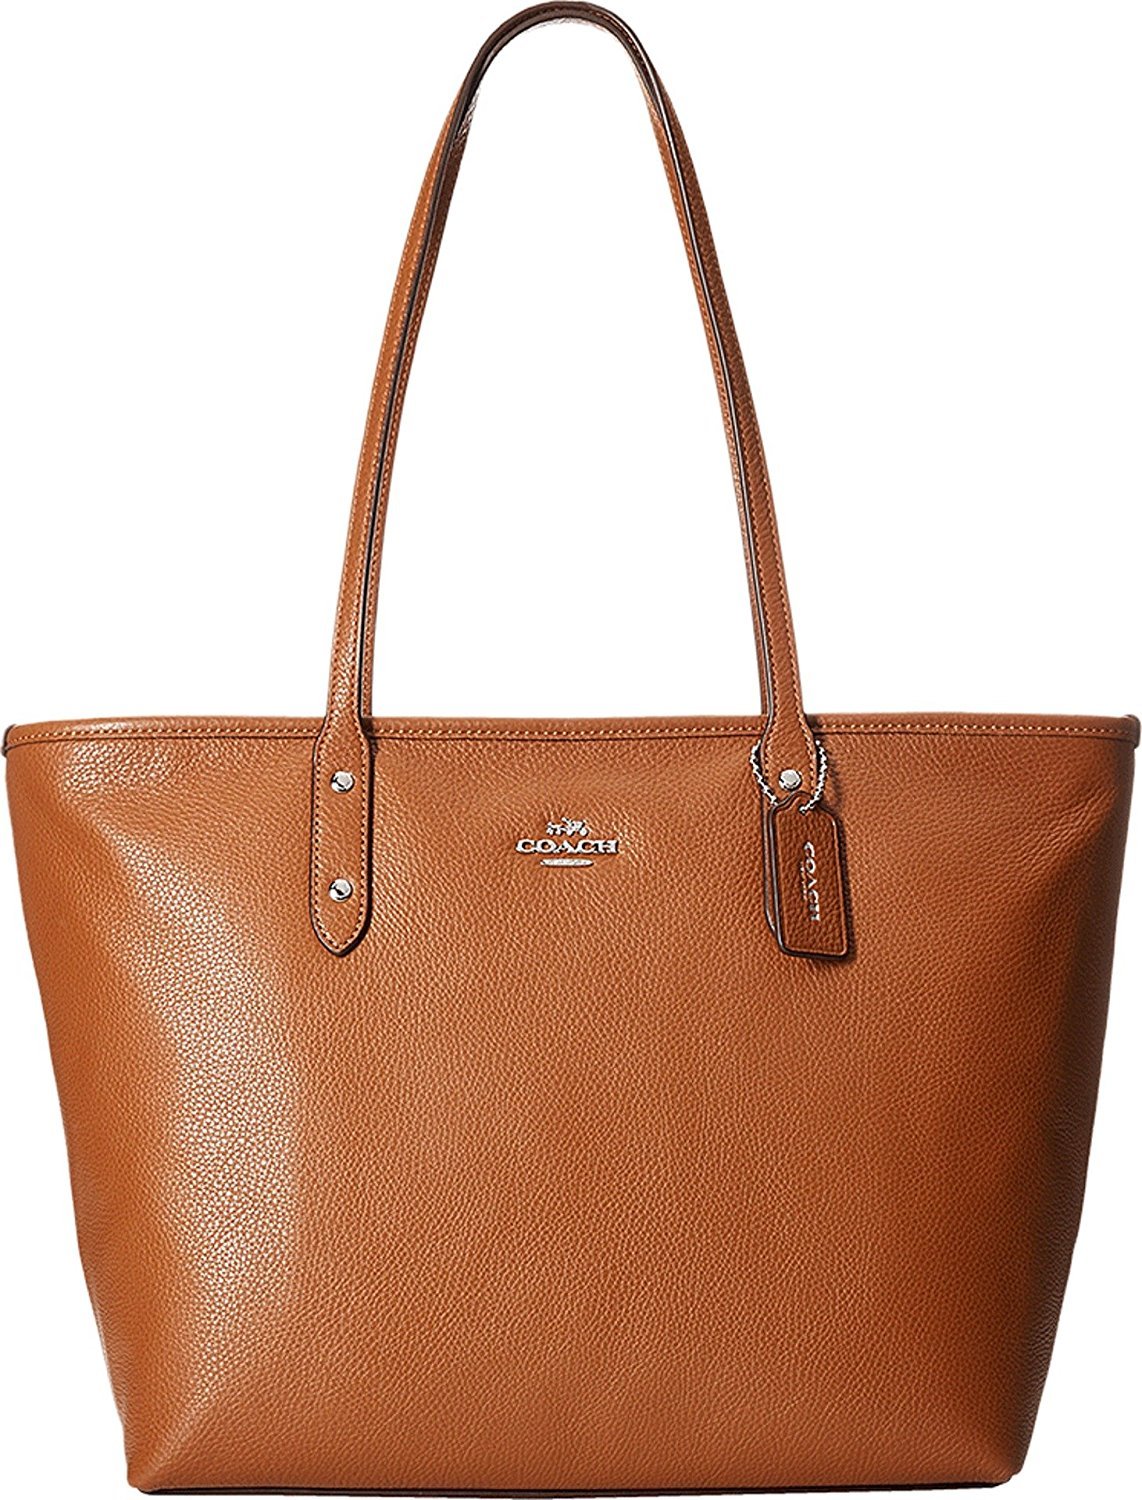 ... low price coach 37155m womens pebbled city zip tote sv saddle tote  c6c9a 0dbec 3cbb6642da769